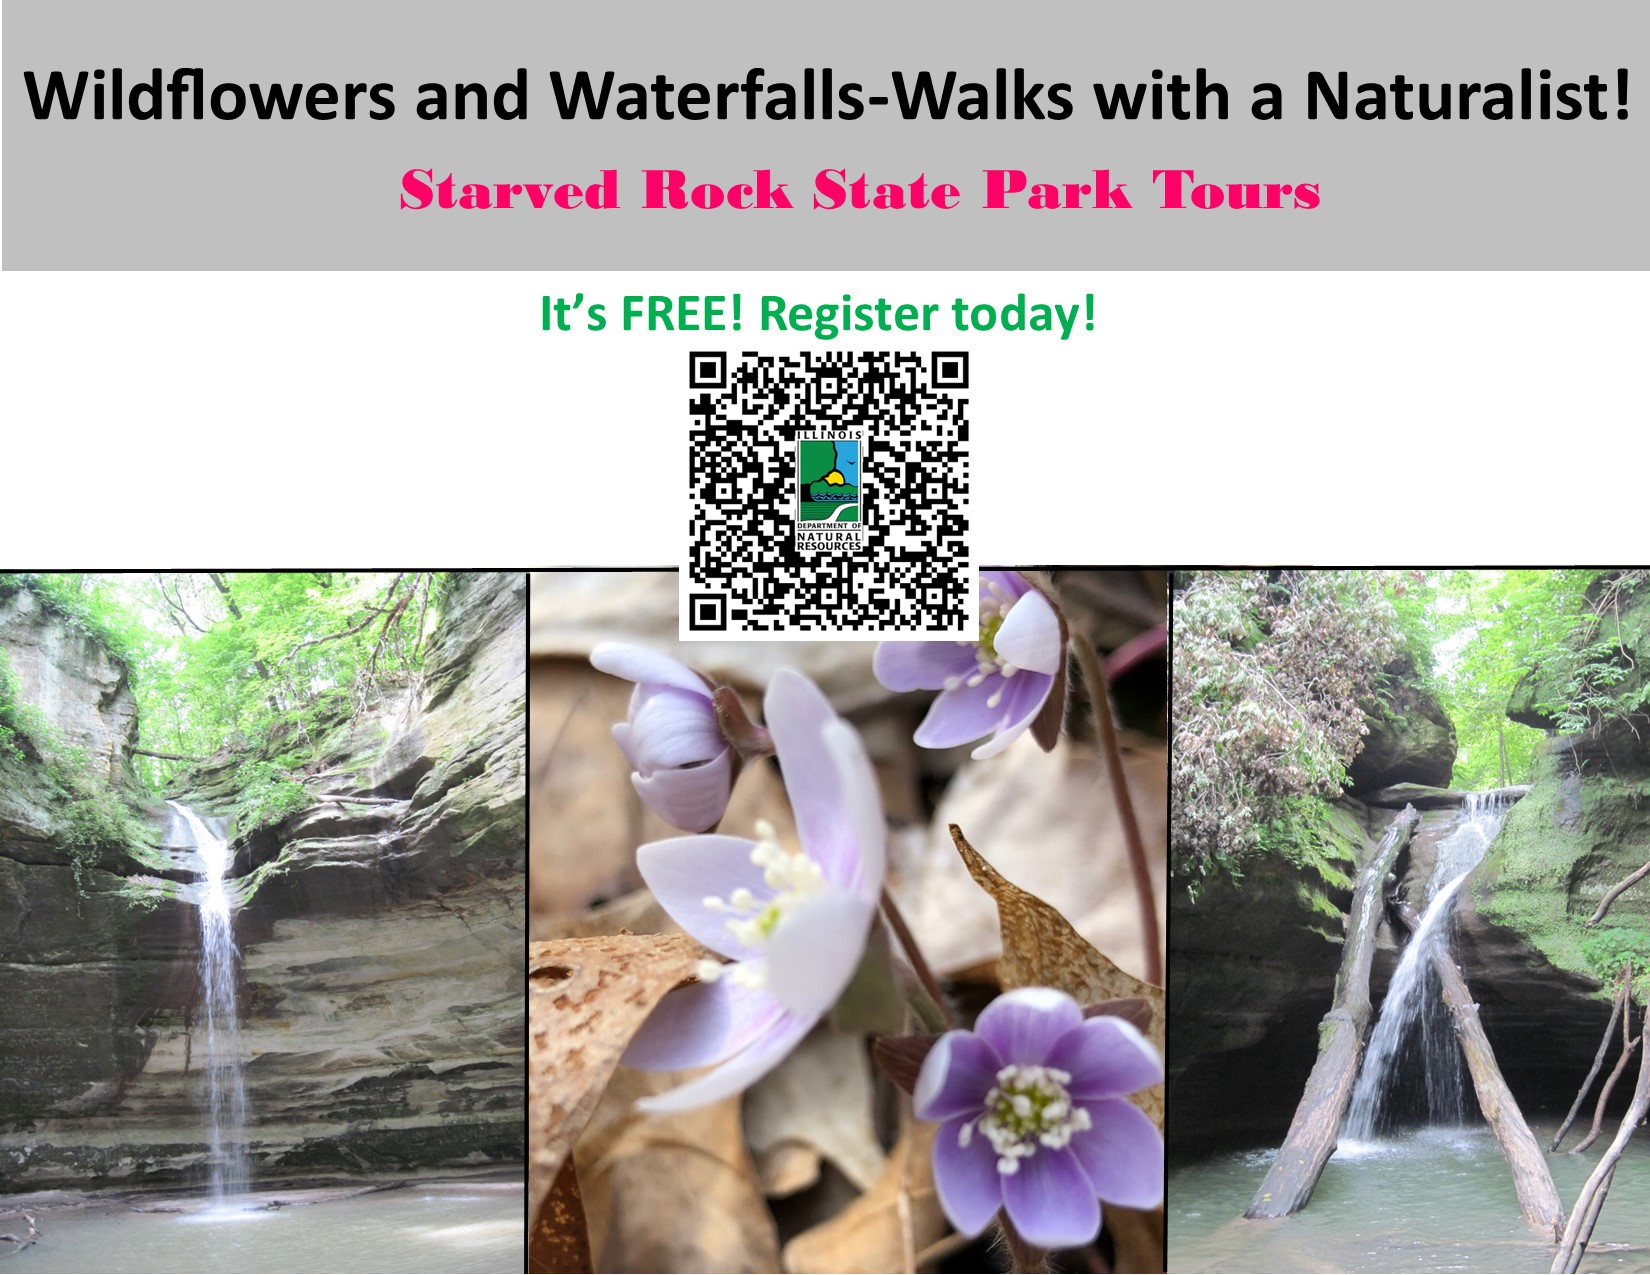 Wildflowers and Waterfalls.jpg